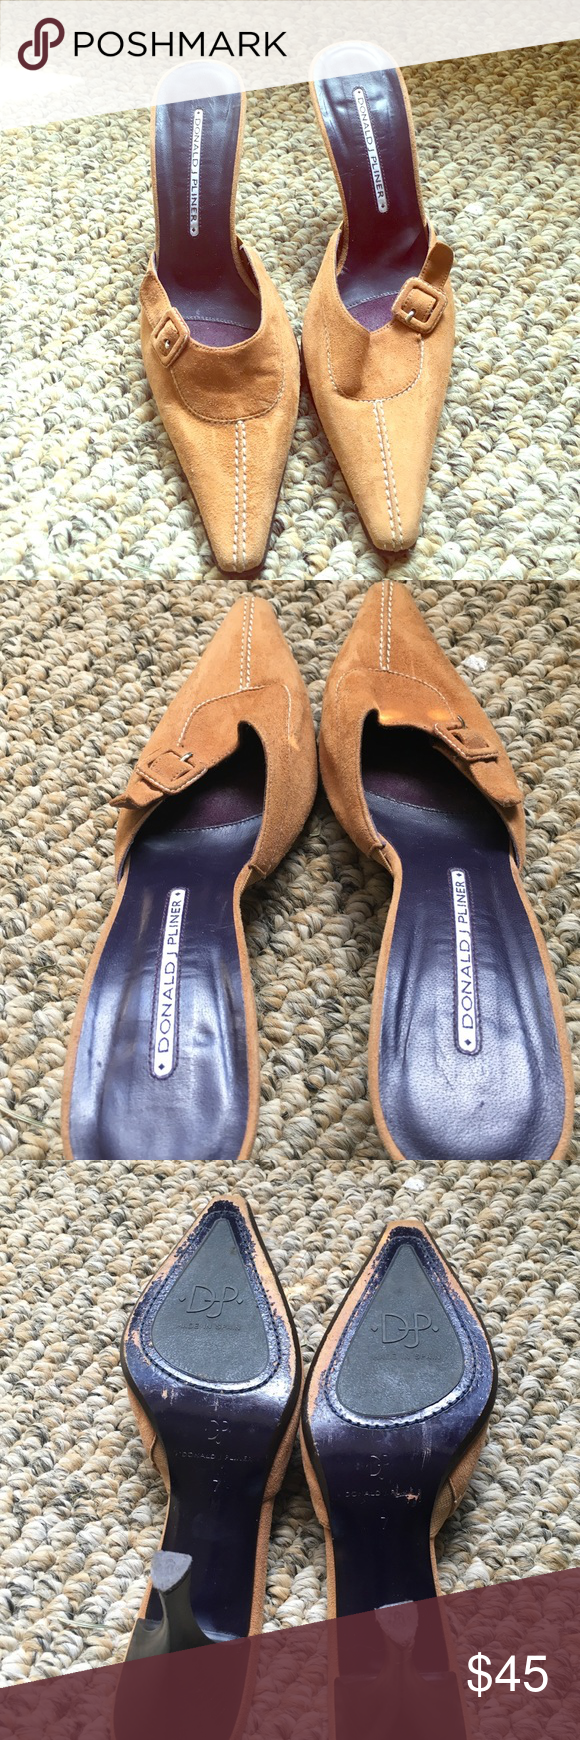 Donald Pliner heels size 7 In good condition, only worn once or twice. Donald J. Pliner Shoes Heels